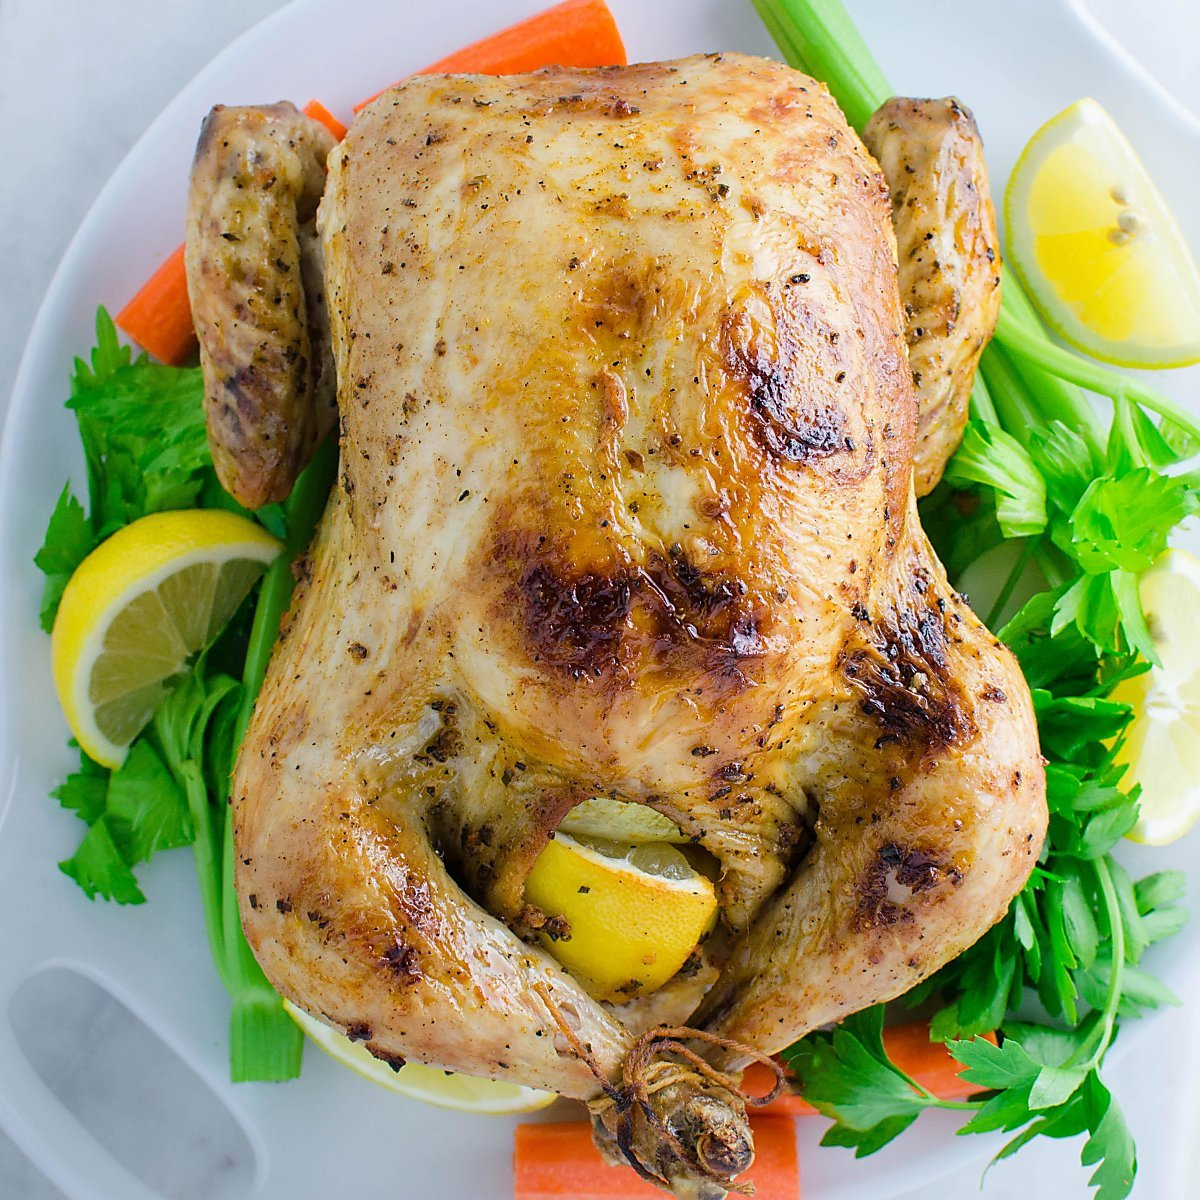 Super Juicy Garlic And Herb Roasted Whole Chicken With Delicious Gravy